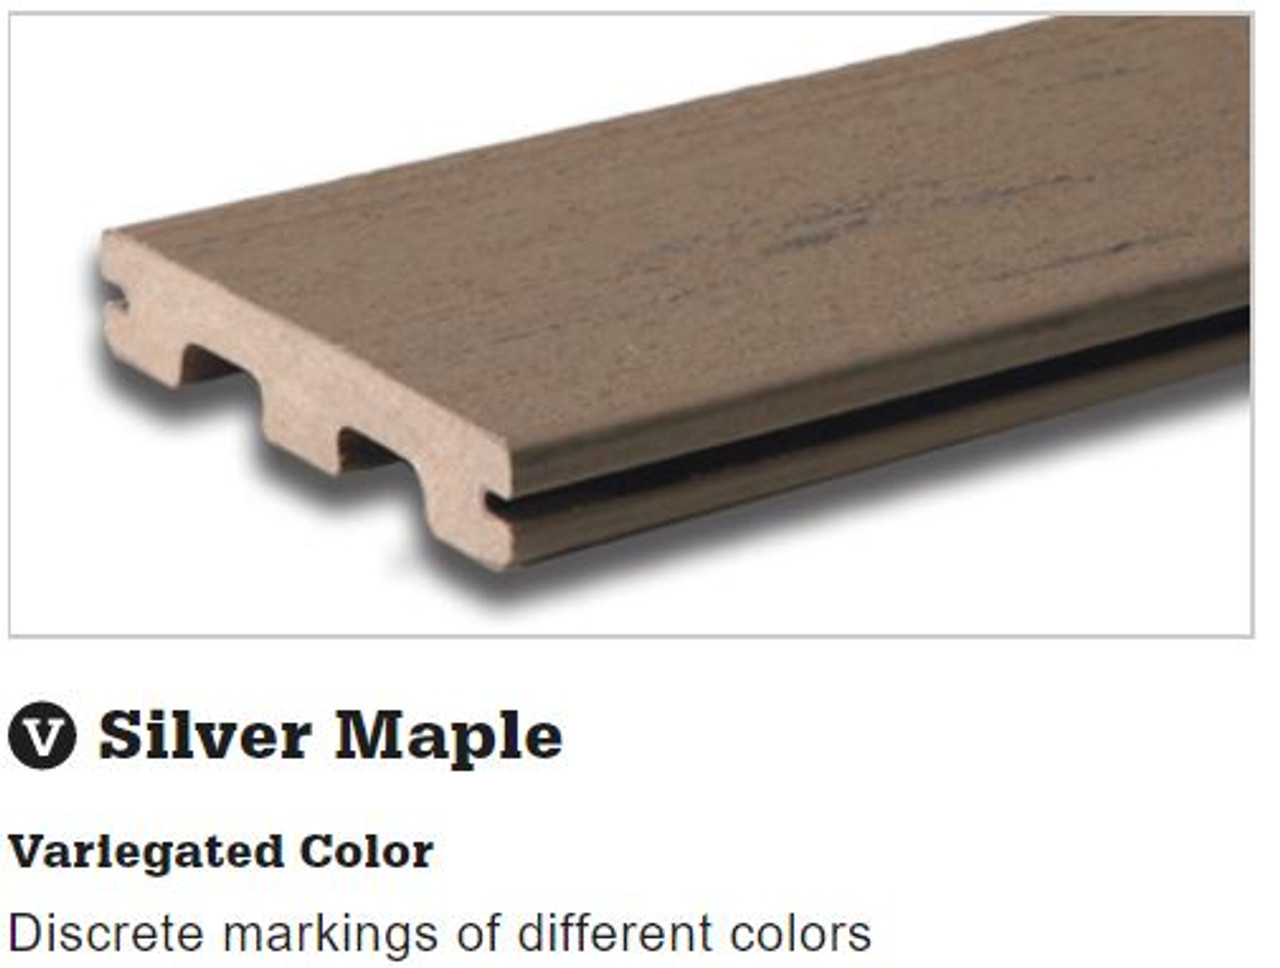 TimberTech Terrain Silver Maple Grooved Decking